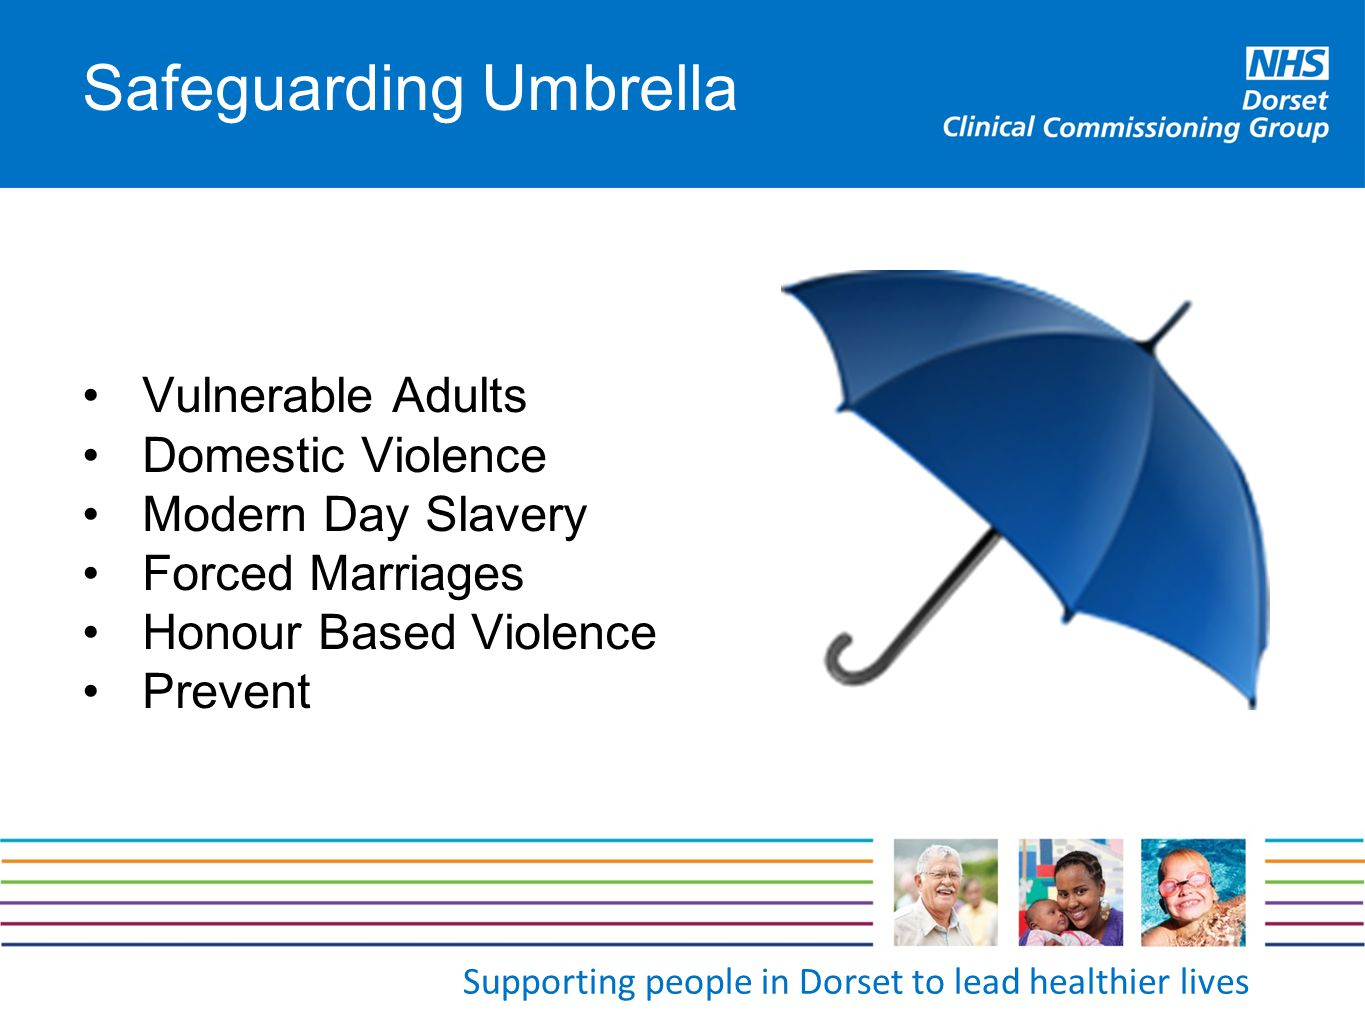 Safeguarding Umbrella